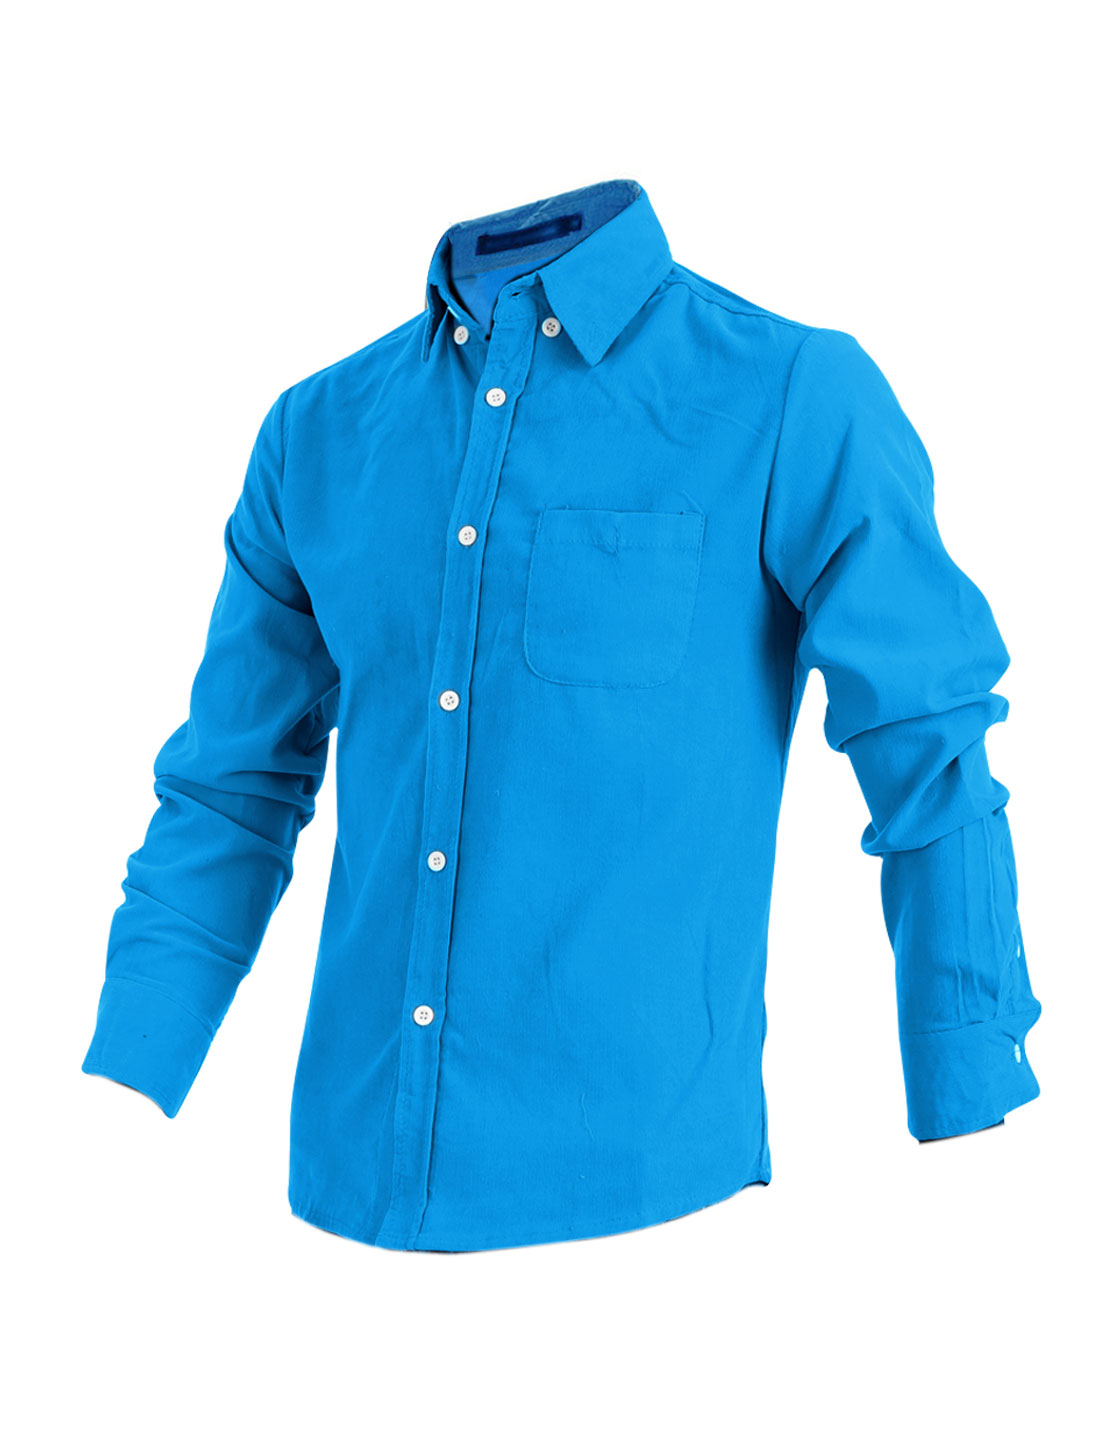 Fashionable Sky Blue Point Collar Long Sleeve Button Down Shirt for Man M